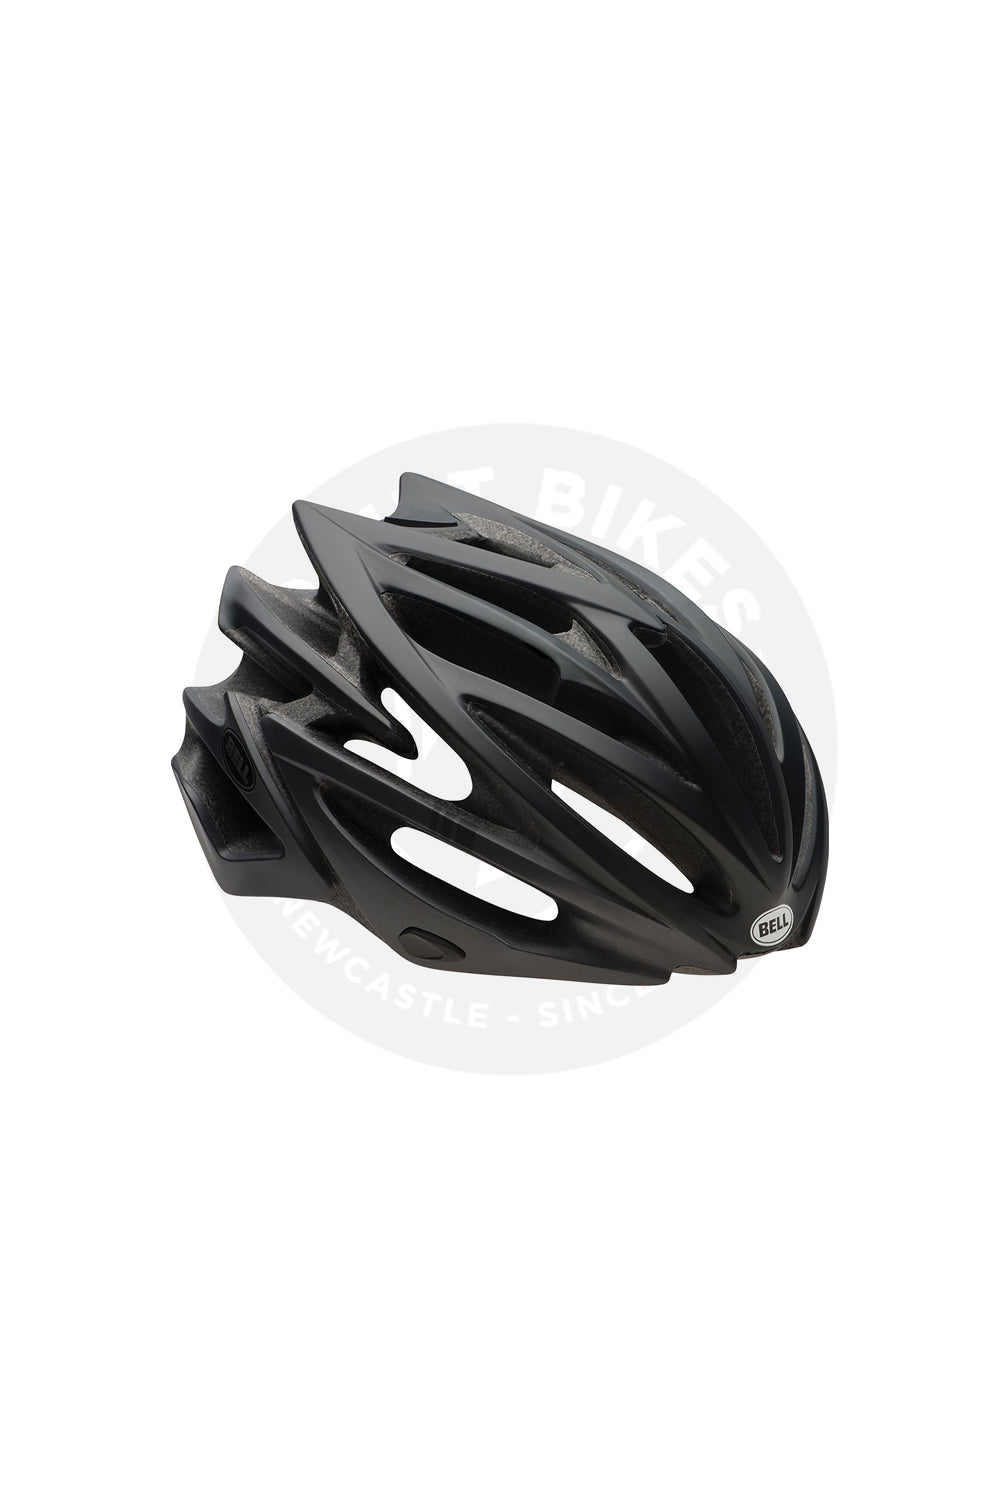 Bell Volt RLX Adult Road Bike Helmet